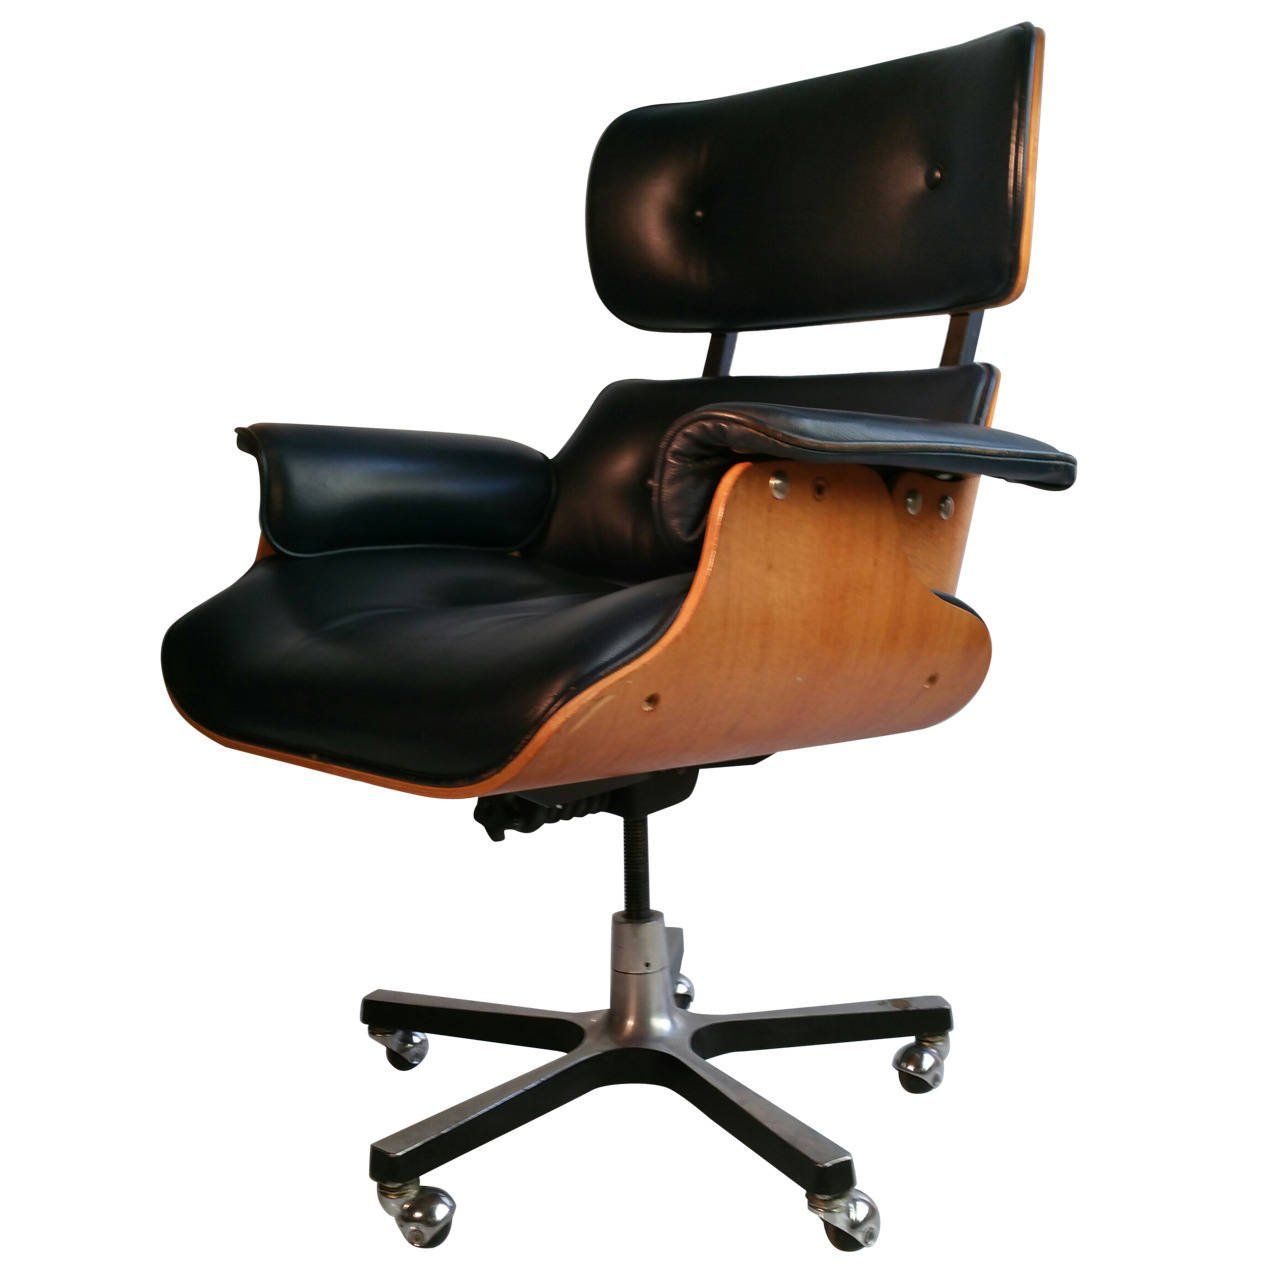 Modernist Eames Style Leather Desk Chair From A Unique Collection Of Antique And Modern Office